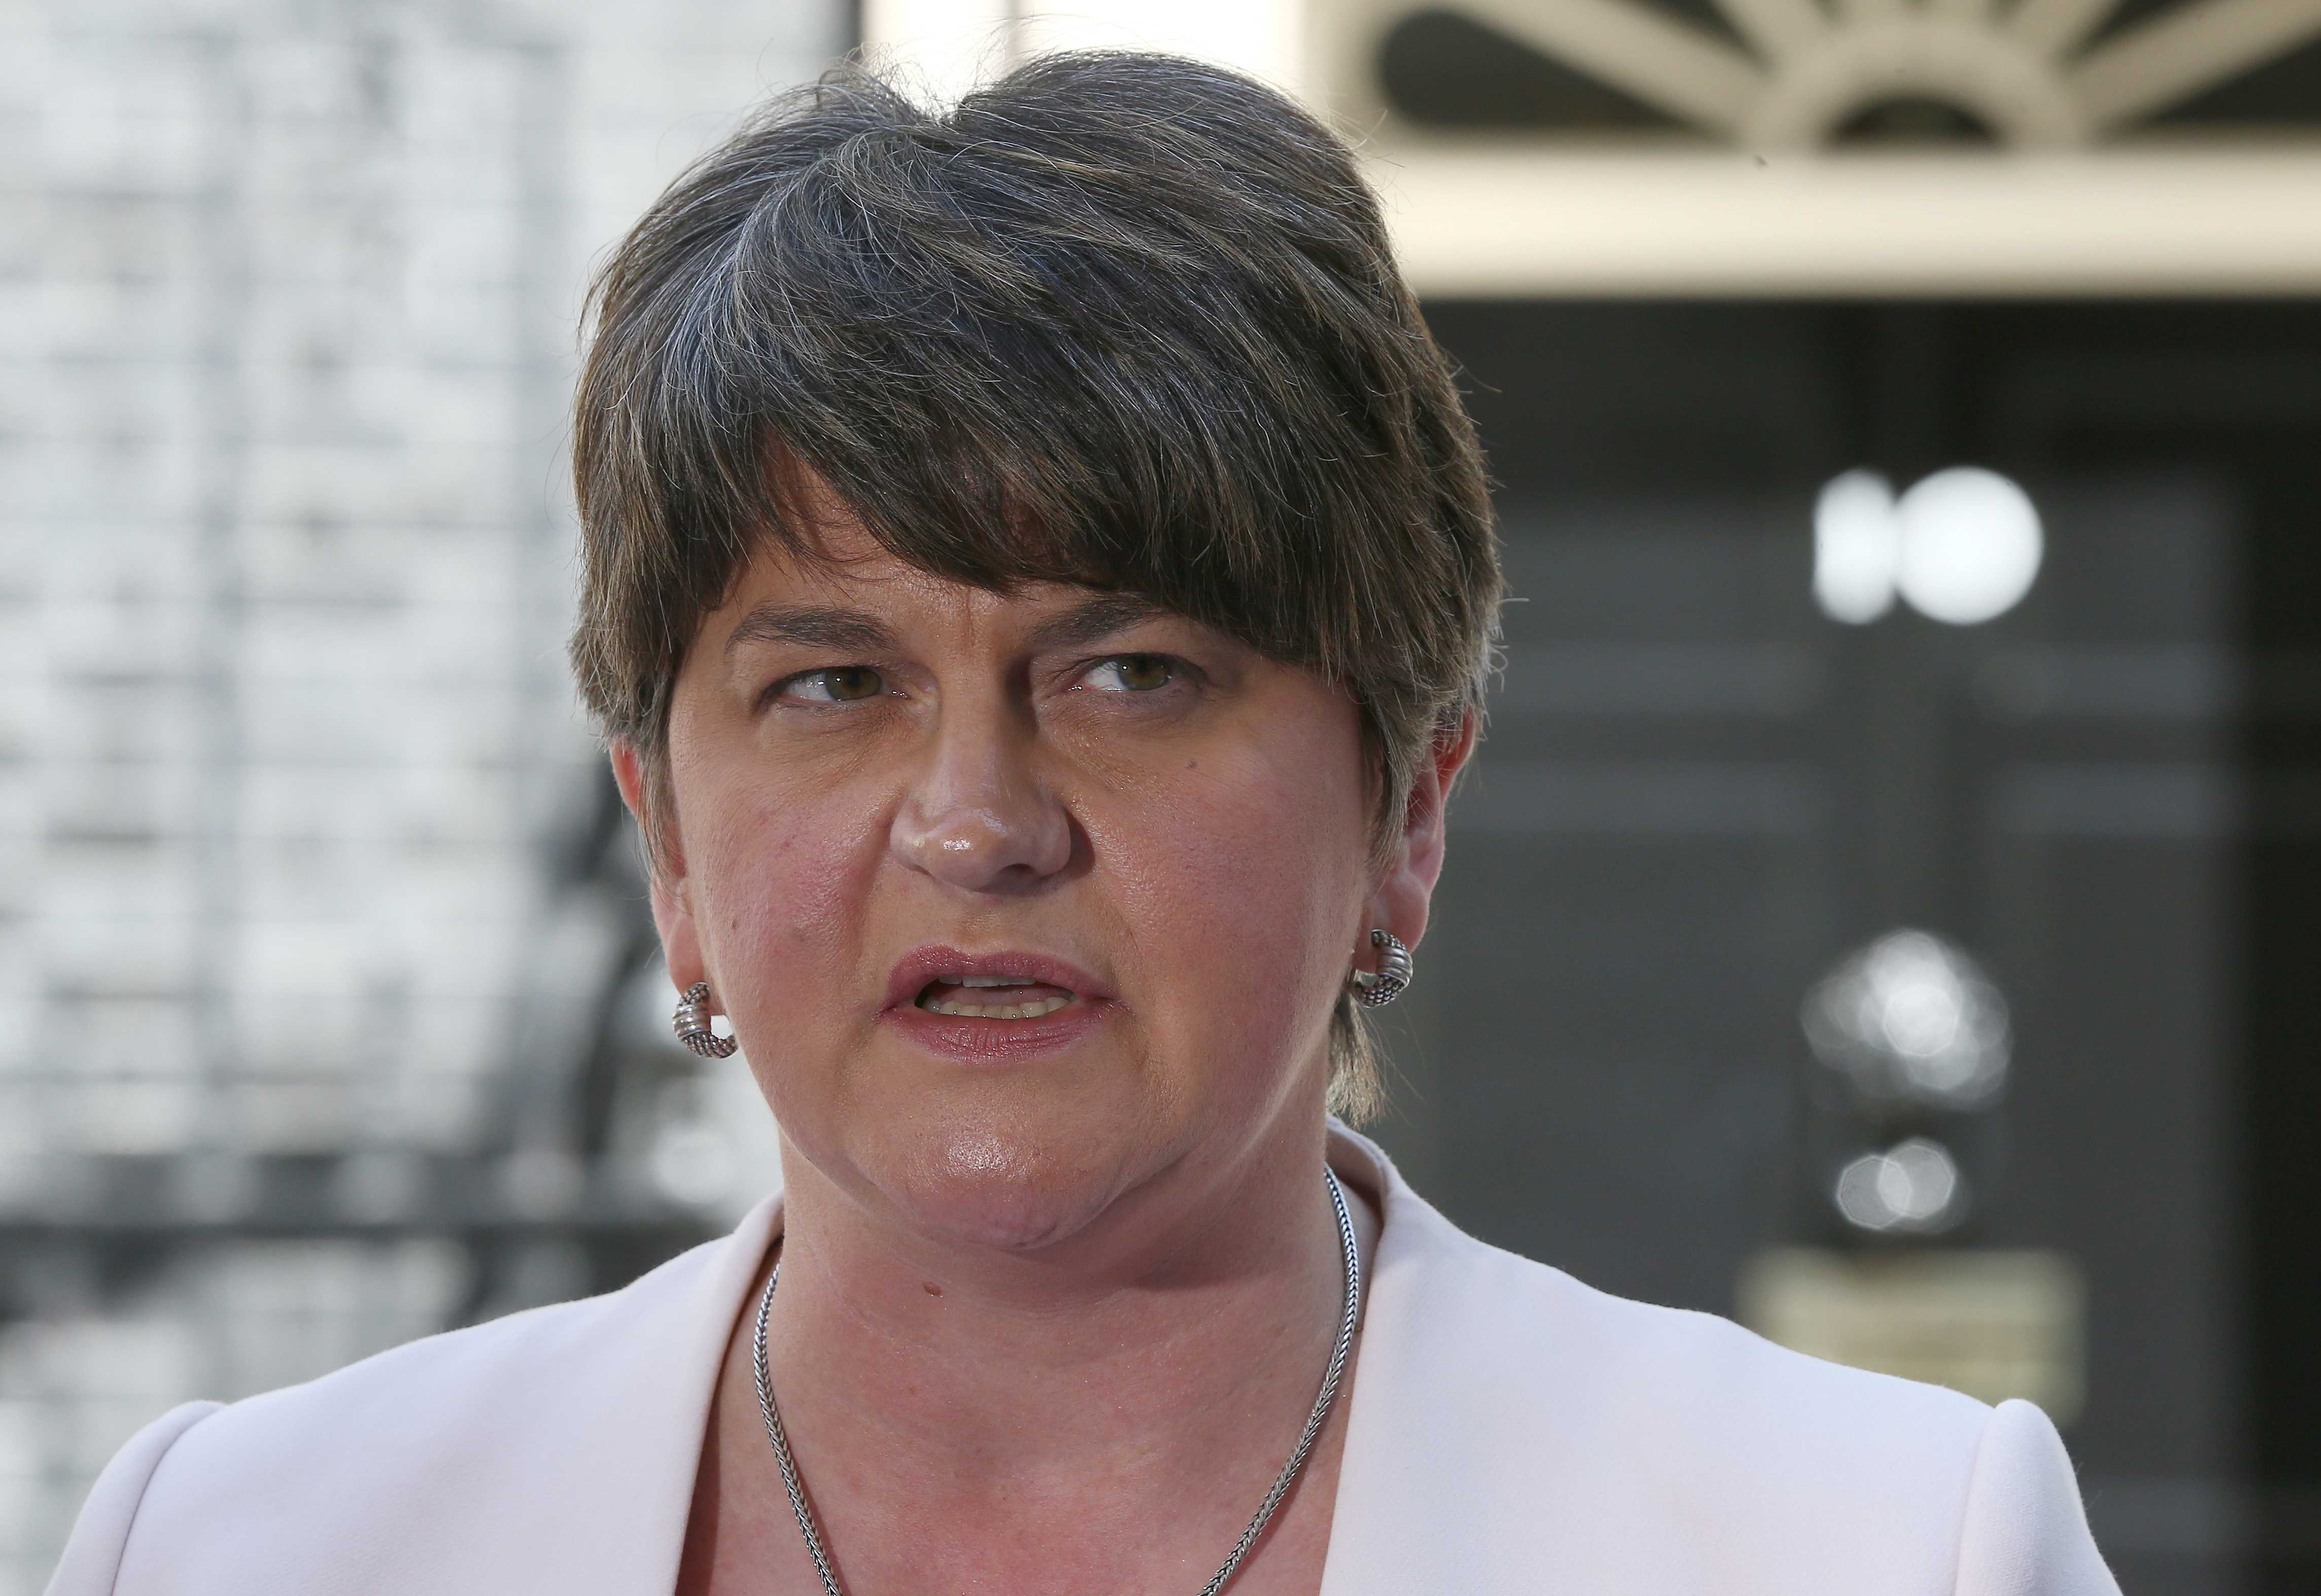 DUP leader says just as firm as Irish government on Brexit